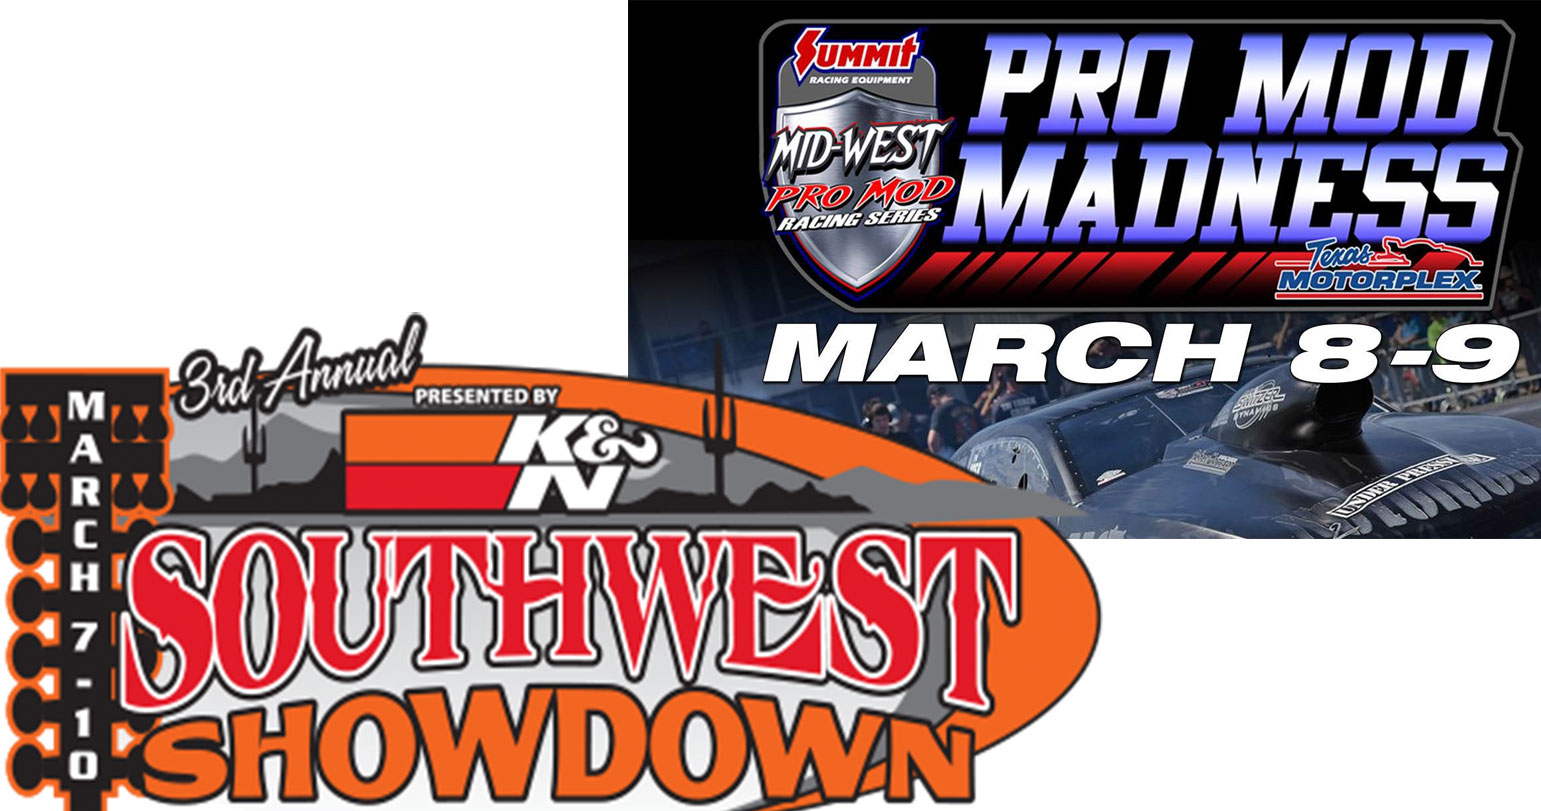 BANGshift LIVE Drag Racing Double Header Weekend! Pro Mods In Texas And Bracket Racing In Arizona!